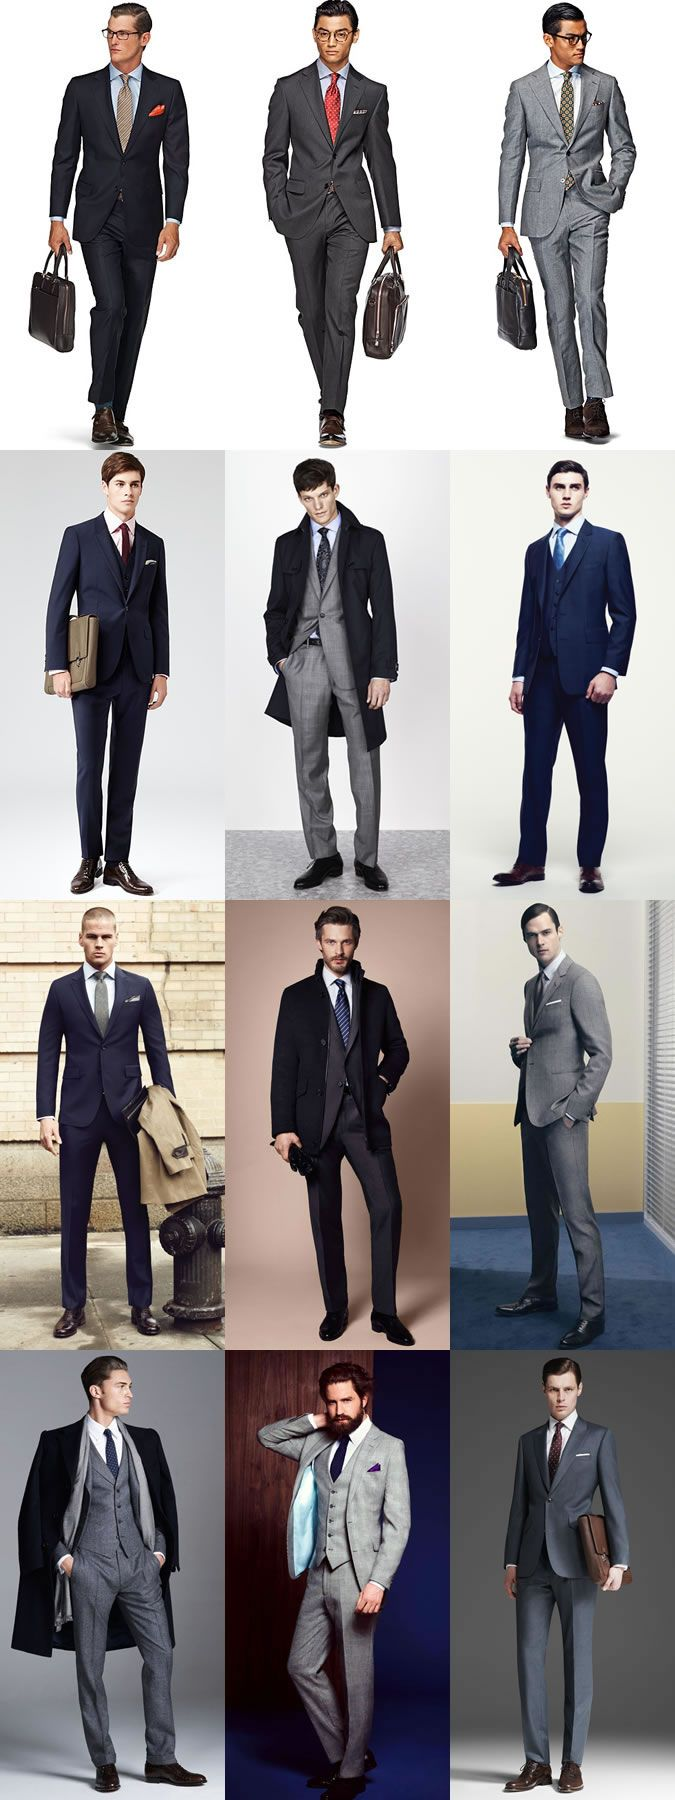 """Look for slim-fit or tailored-fit cuts to cast a sleeker, contemporary silhouette around the office."" #men's #business #fashion"